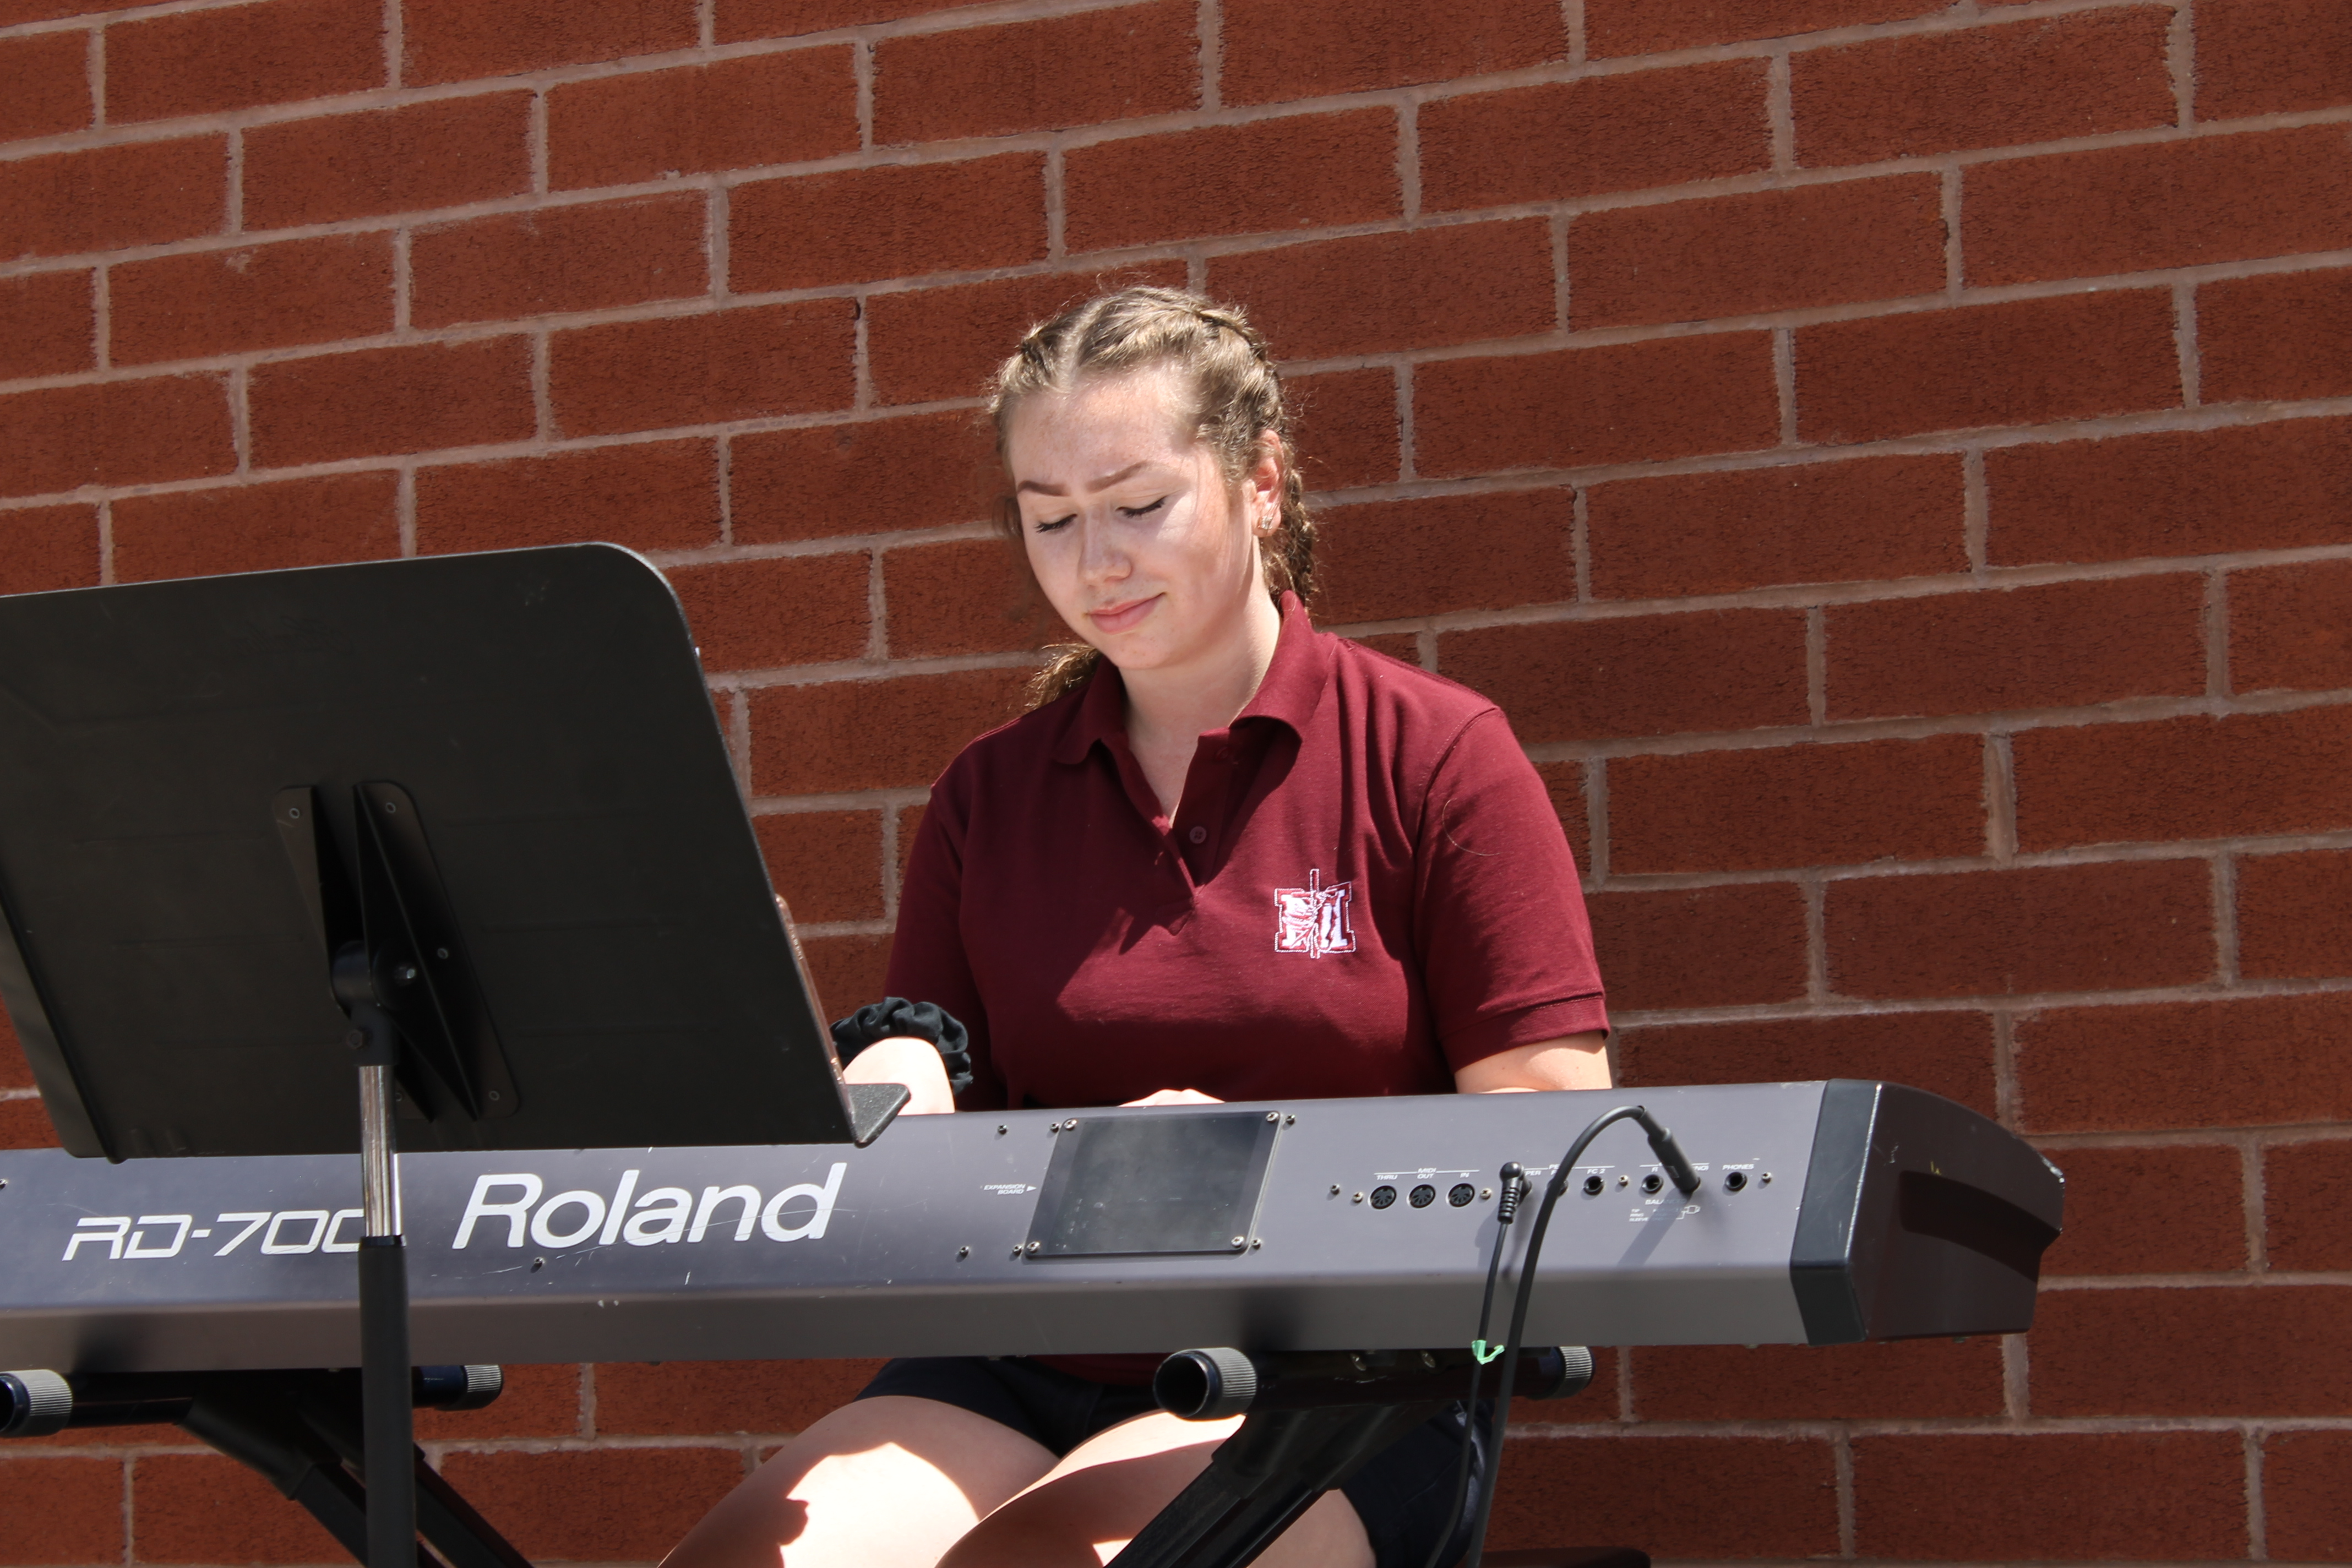 Student playing electronic instrument